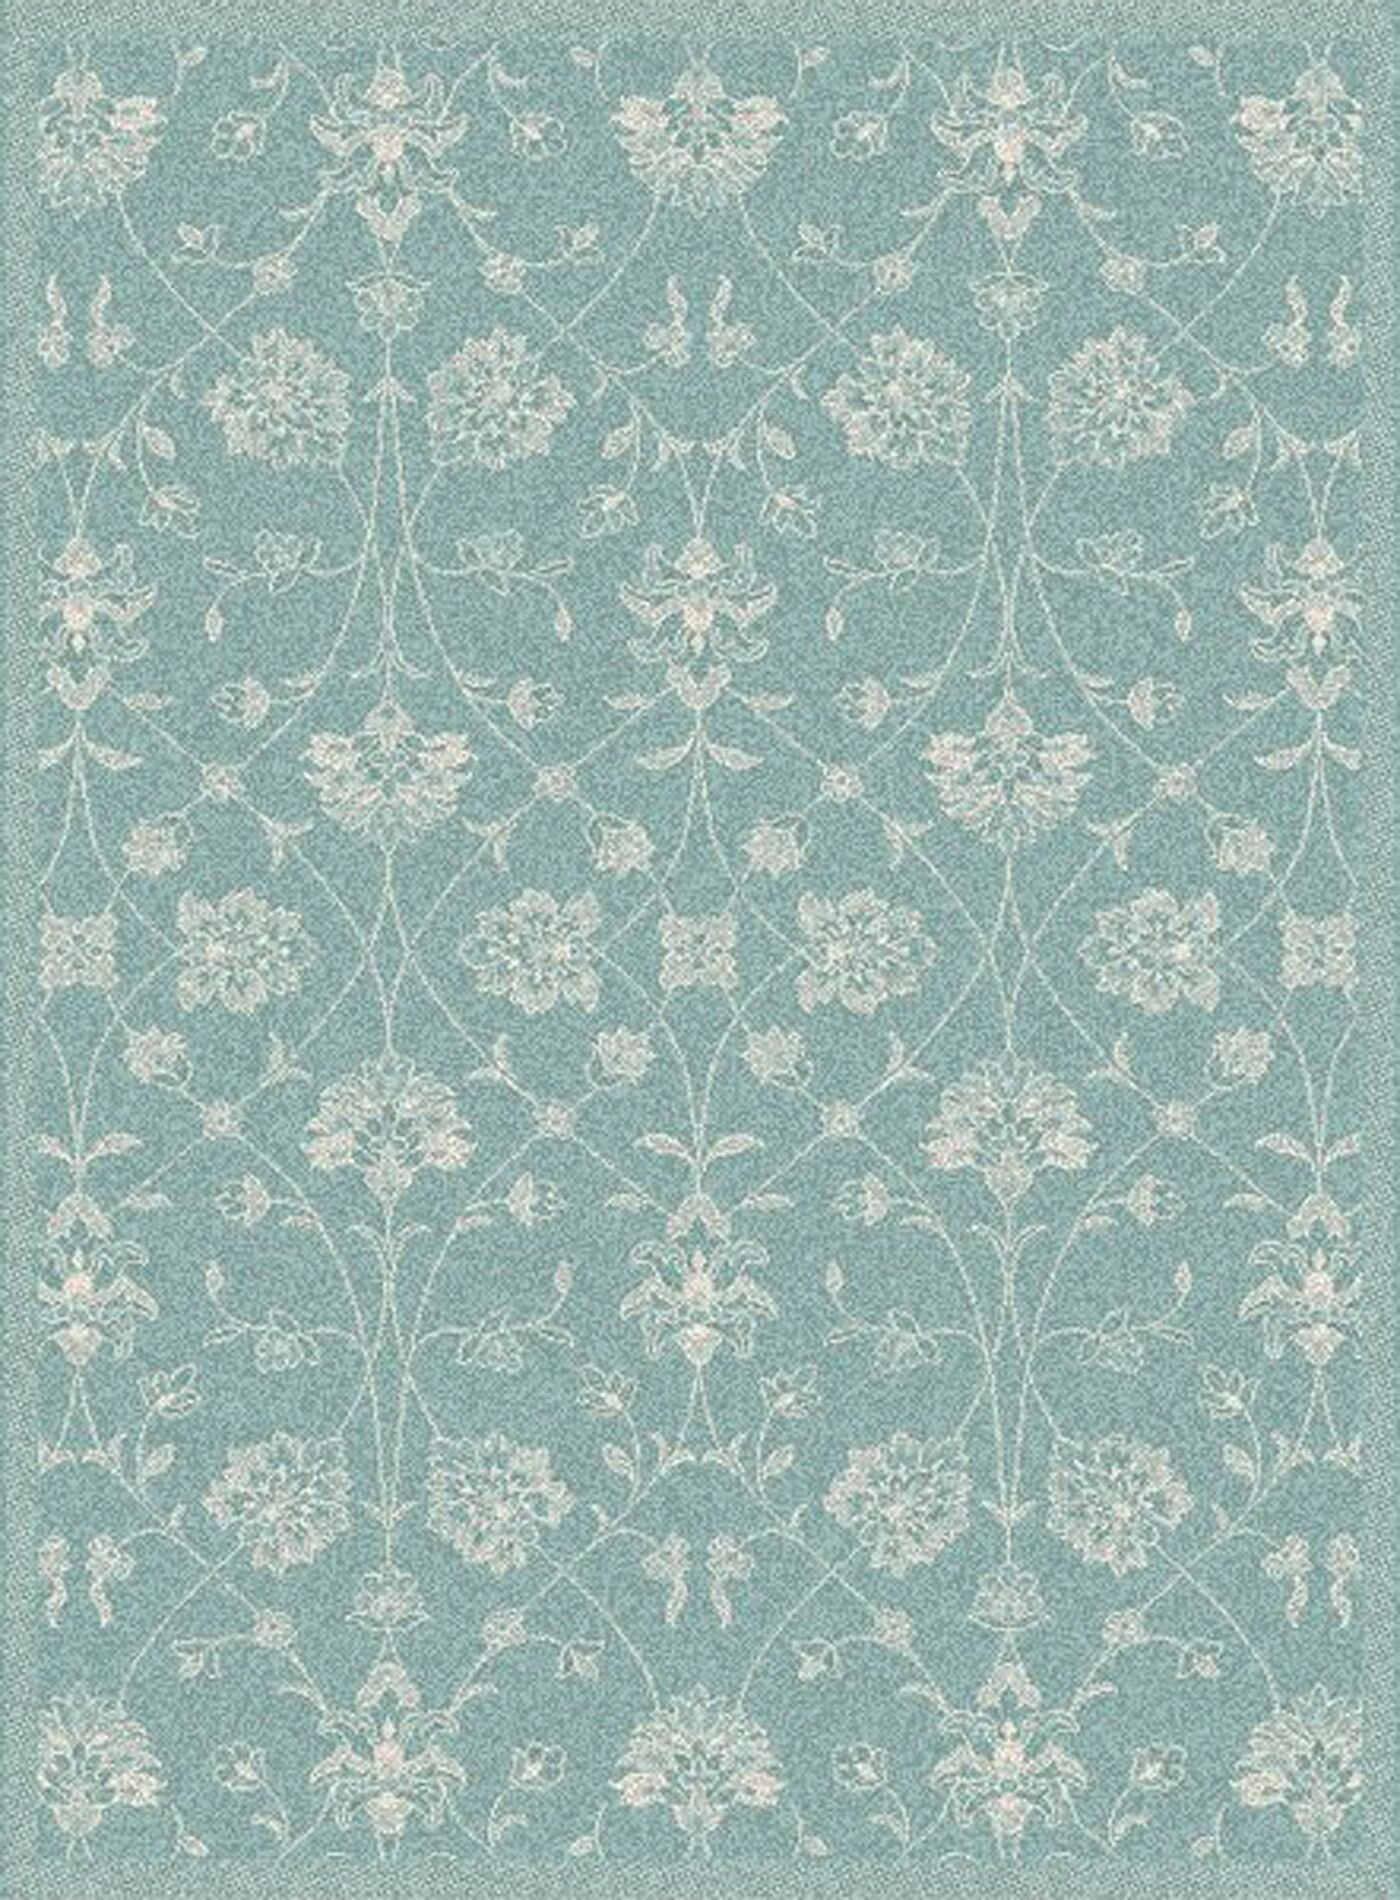 Paula Blue Floral Outdoor Area Rug Rug Size: Rectangle 3'11